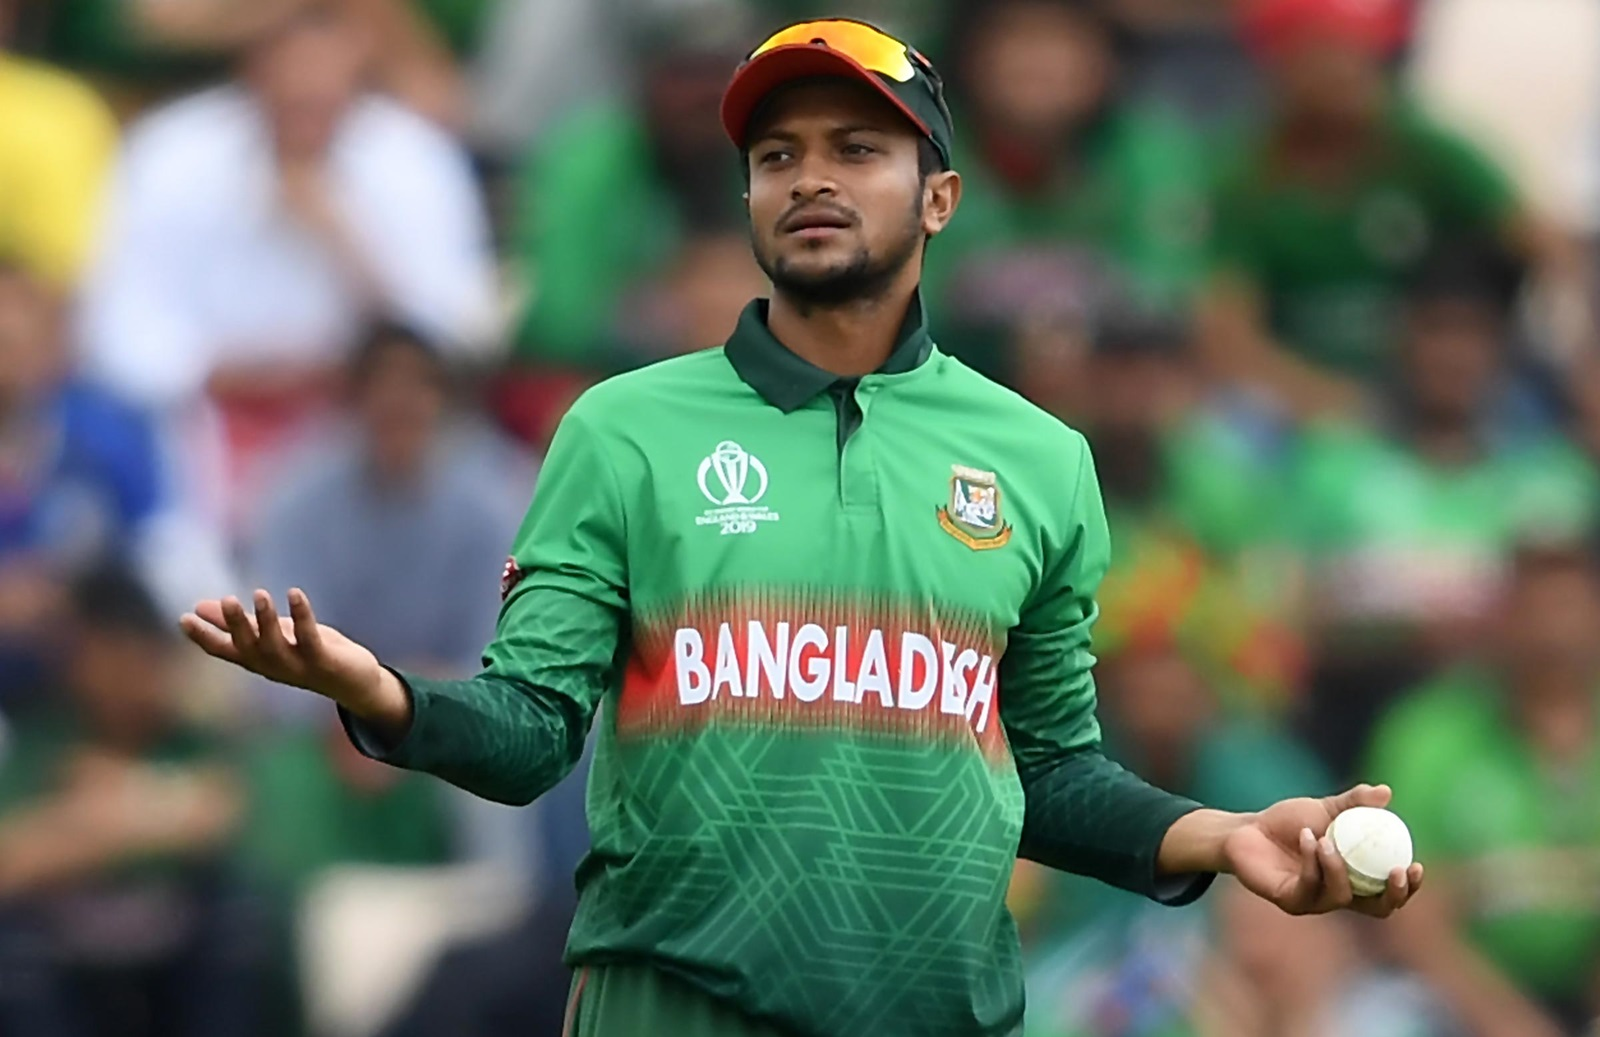 Shakib was handed a two-year ban last year as he failed to report multiple corrupt approaches | Getty